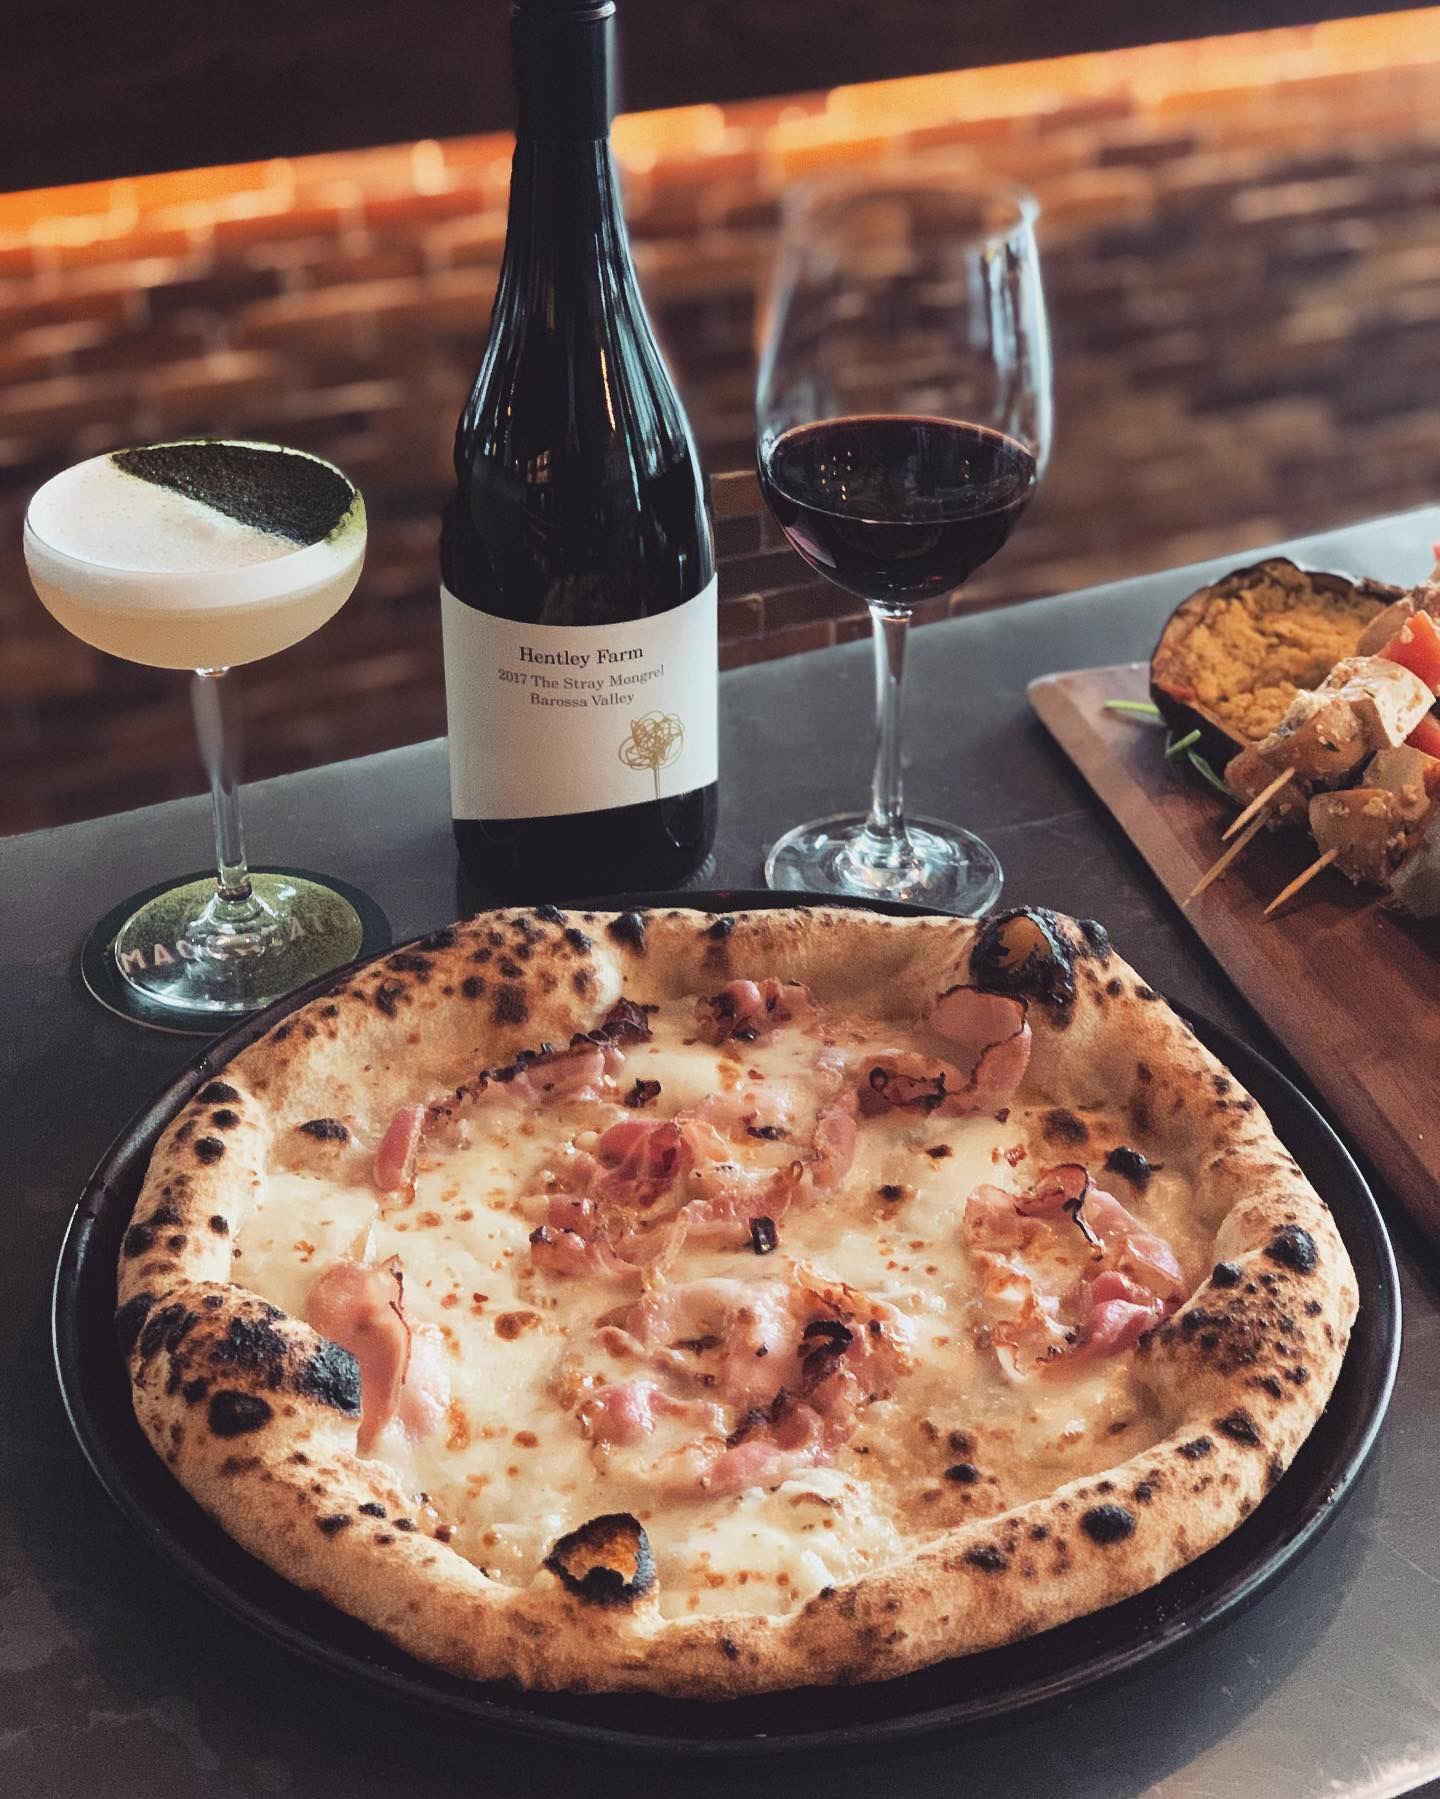 31 July-6 August - TGIF!.Pizza time here at Macchiato.This week's special is a pumpkin base pizza with double smoked, leg ham and smoked scamorza cheese. 🤤 .Bring on the Smokey pizza! Recommended with a special wine on the menu, Hentley Farm 'Stray Mongrel' GSZ (Grenache, Shiraz, Zinfandel) from Barossa.